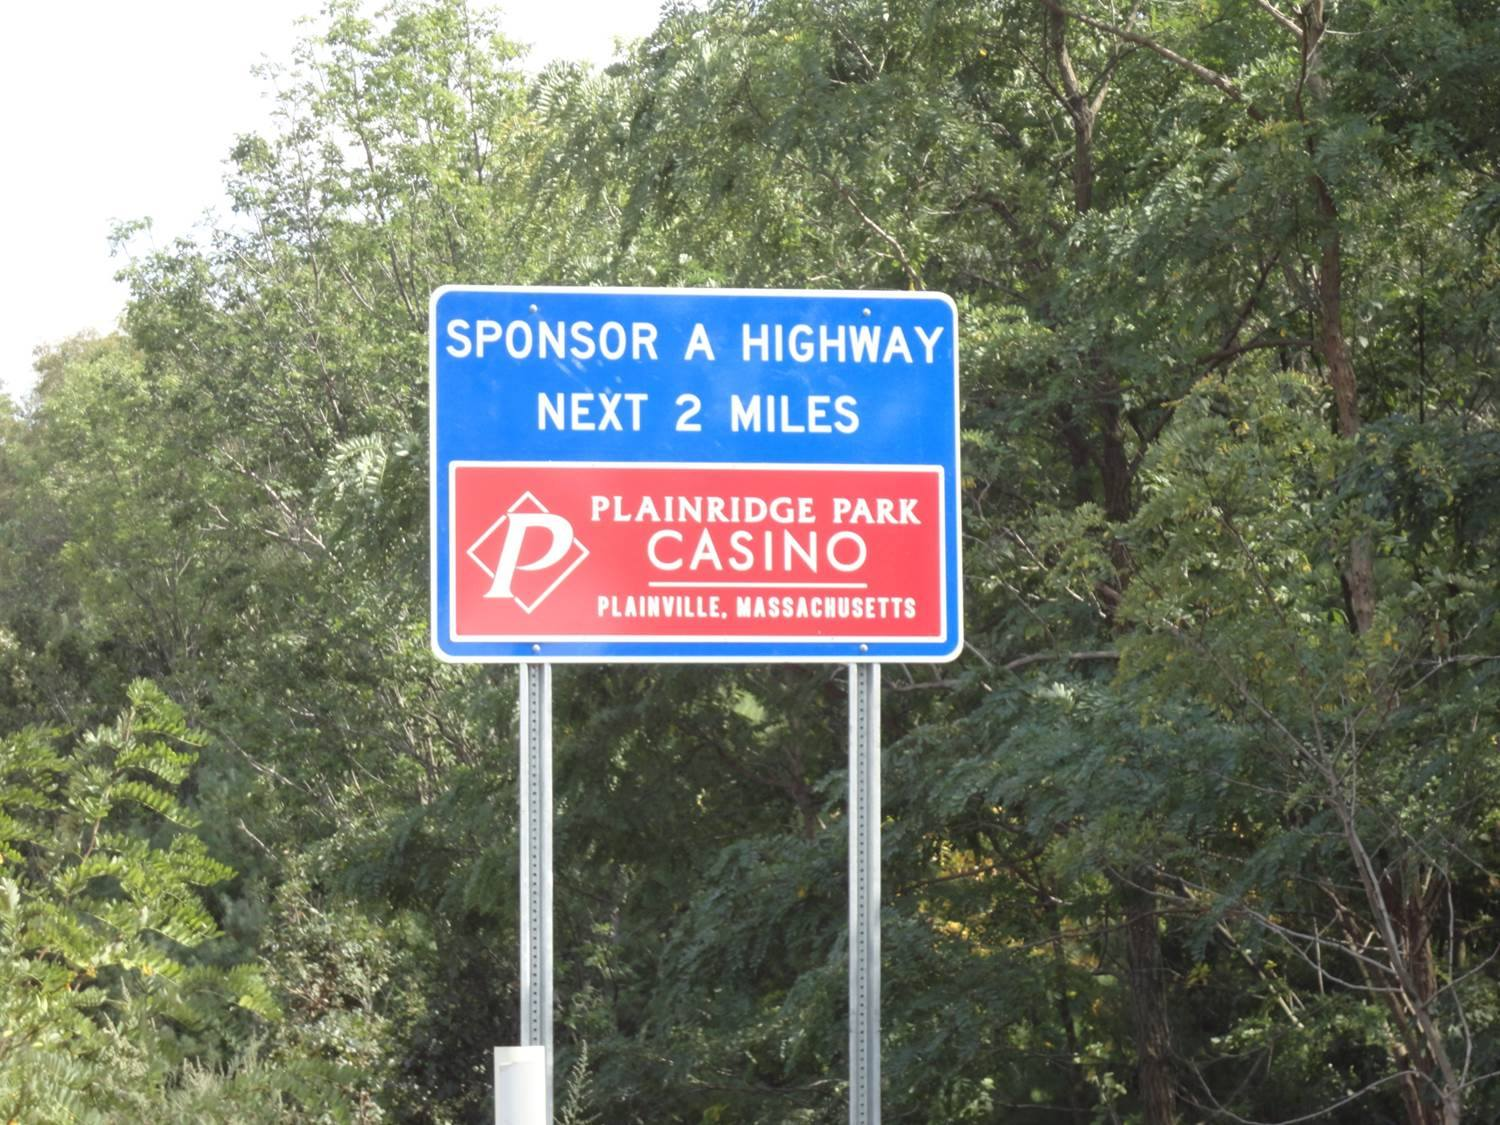 Non-Indian casino in Massachusetts defends decline in revenues